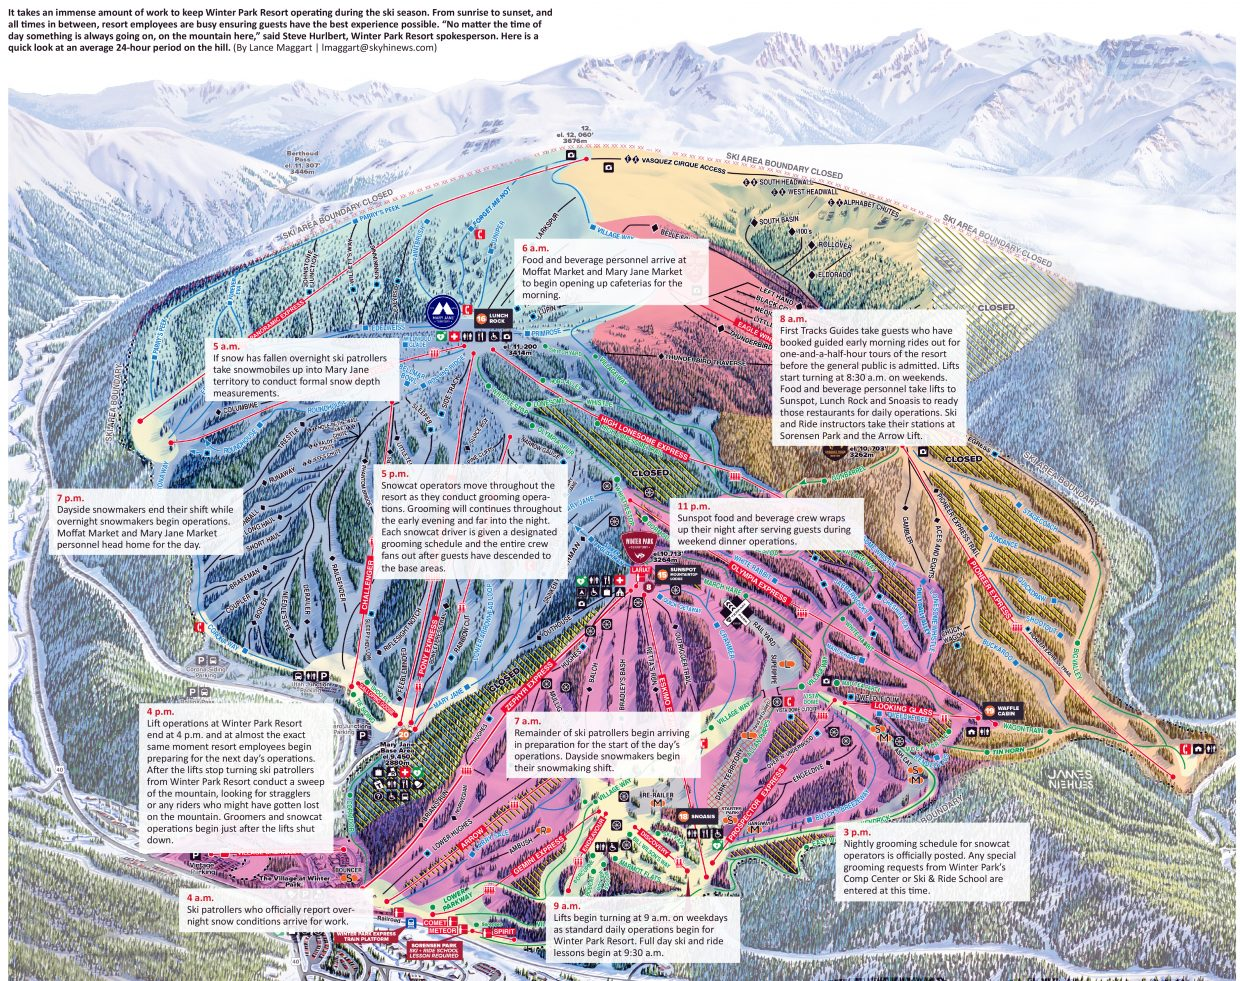 on the mountain: what sets winter park resort apart from other ski